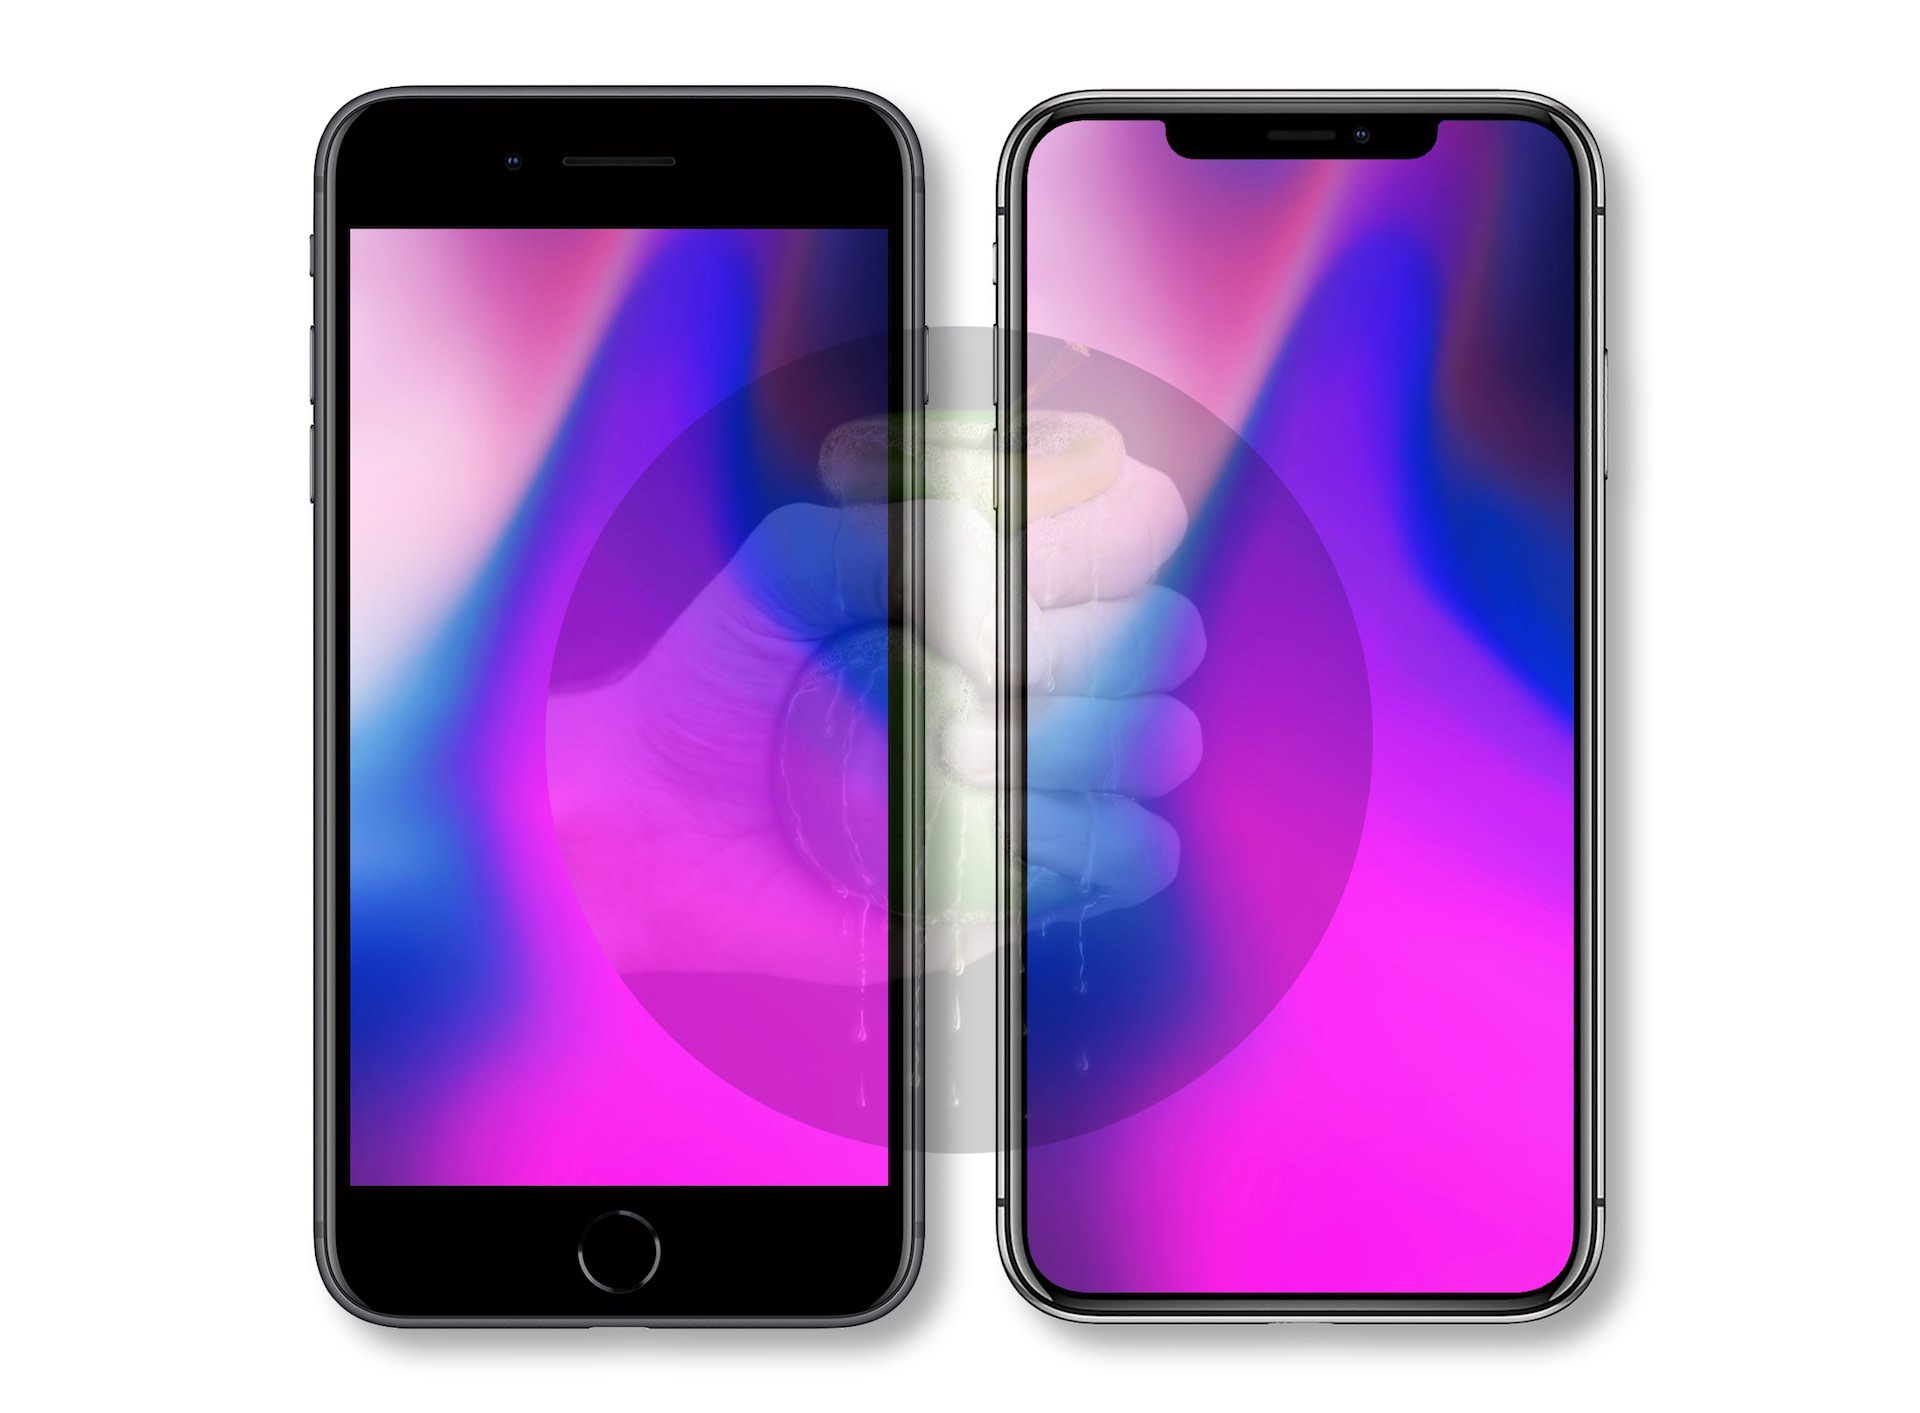 iPhone X Plus comparado con el iPhone 8